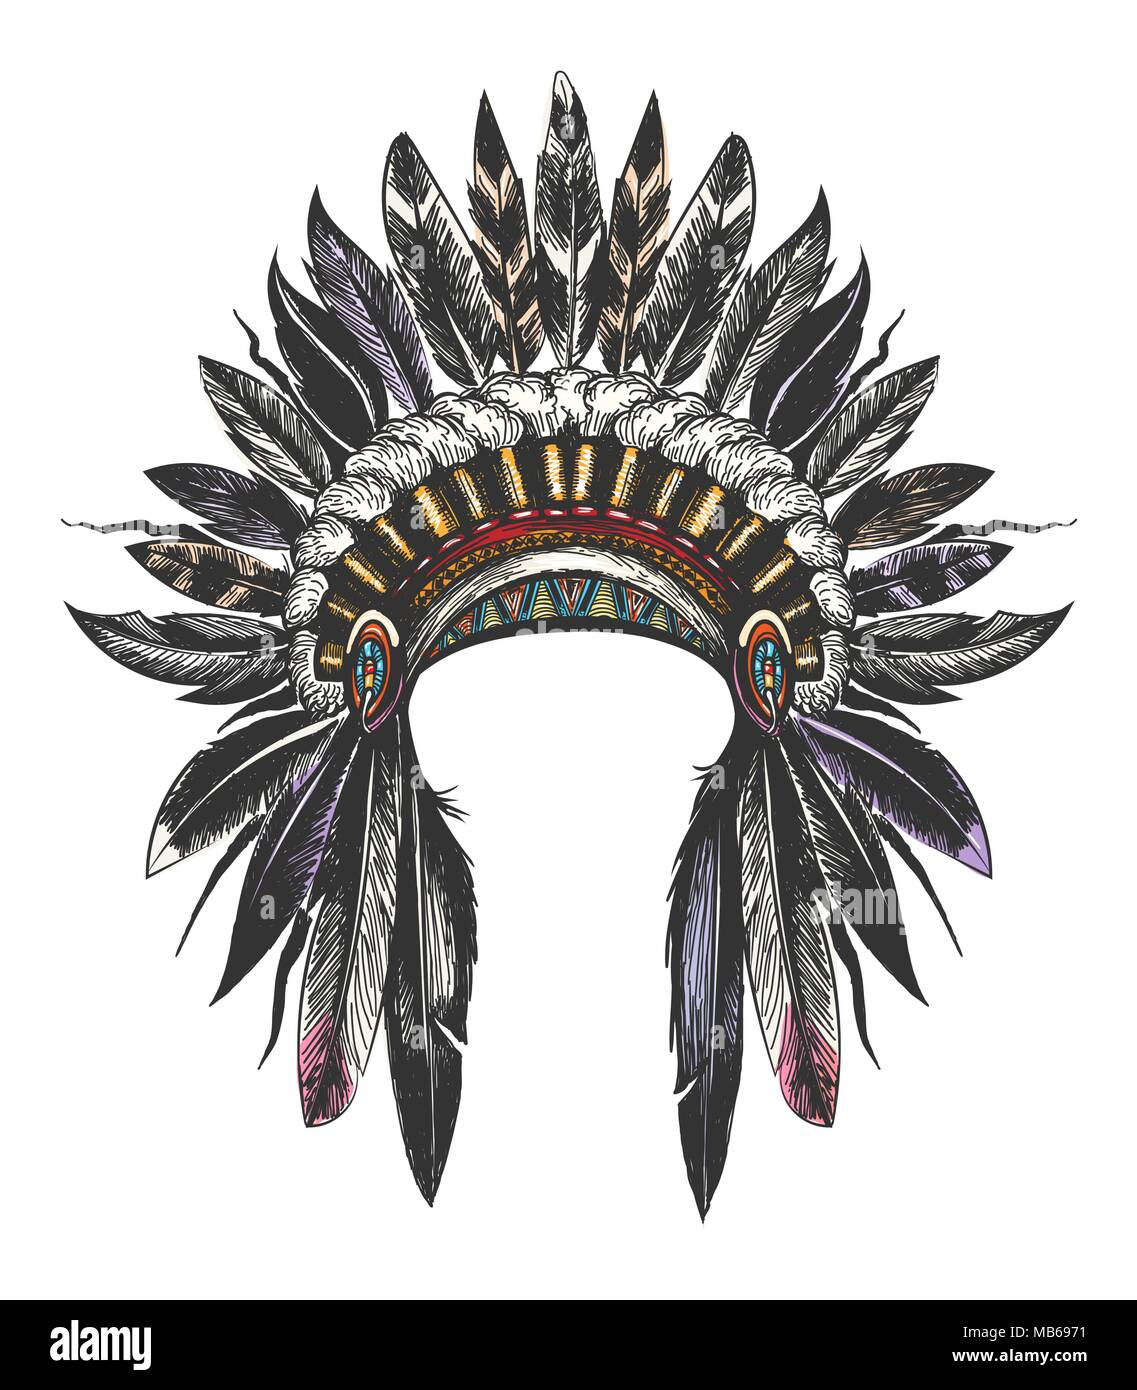 Hand Drawn Colorful Feathered War Bonnet. Vector illustration. - Stock Image